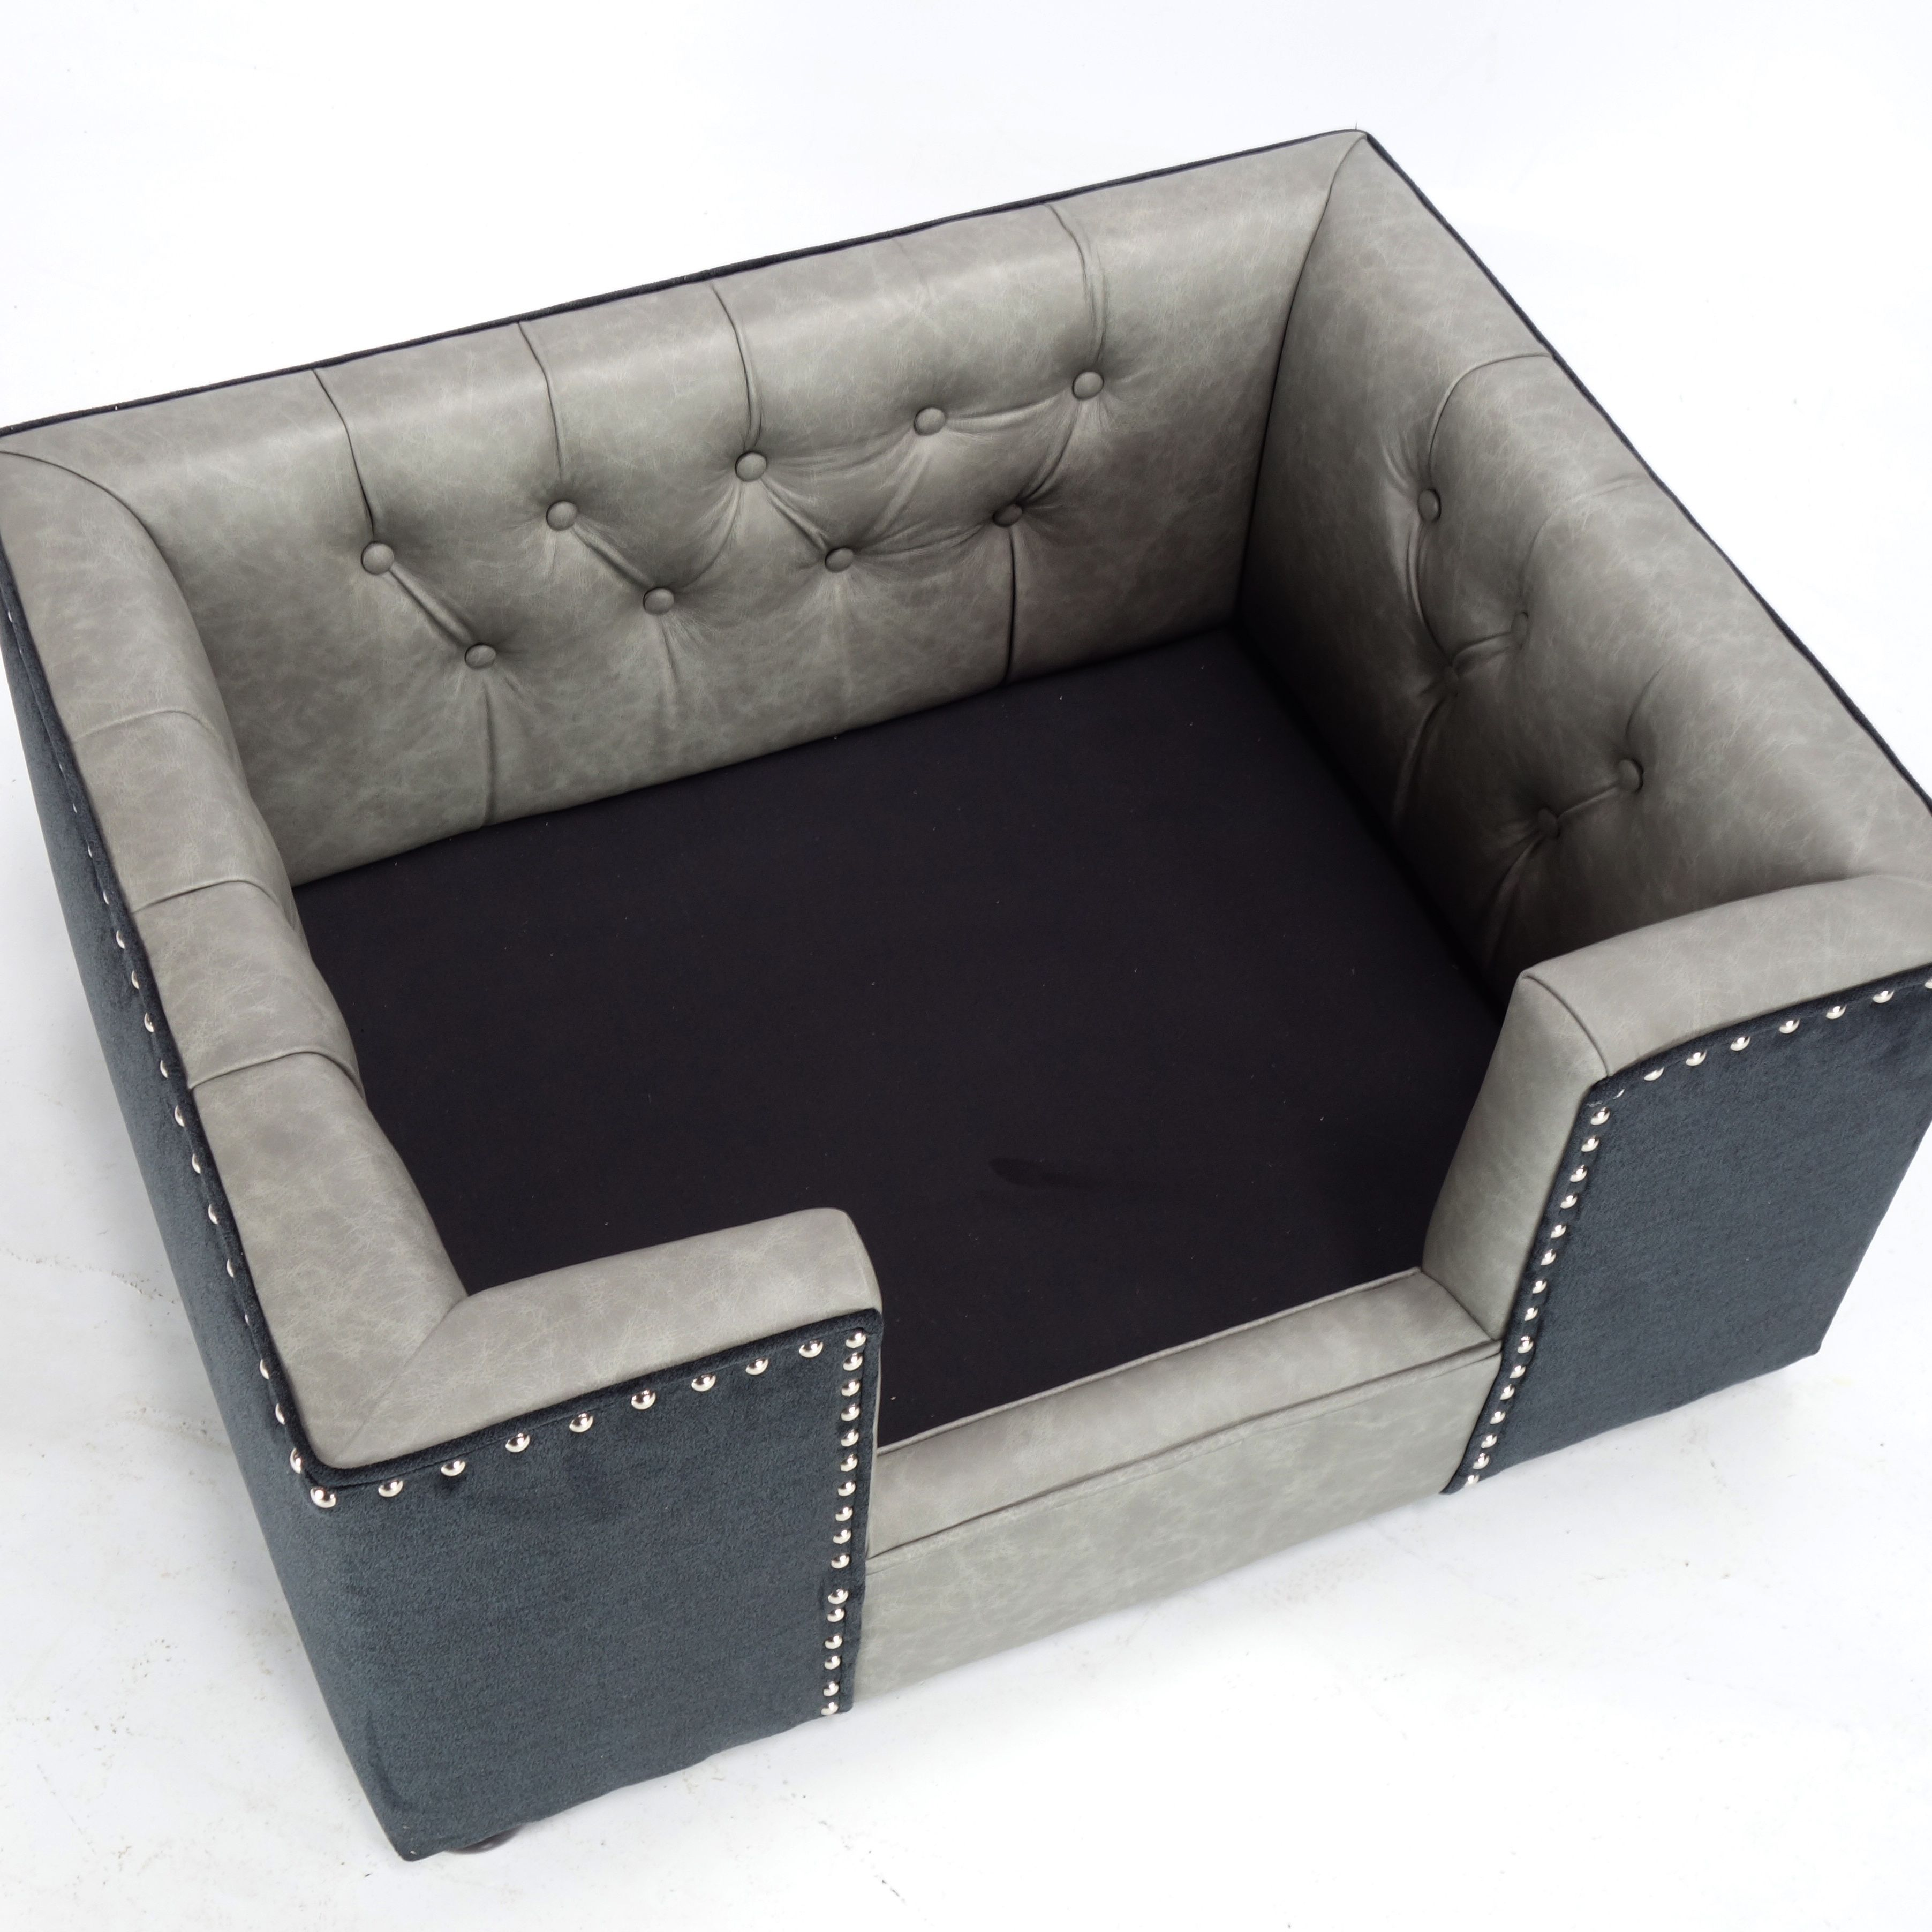 A Luxury Dog Bed Chesterfield With A Buttoned Interior All Hand Made And Upholstered In A The Finest Quality British L Sofa Bed Uk Dog Sofa Bed Luxury Dog Sofa